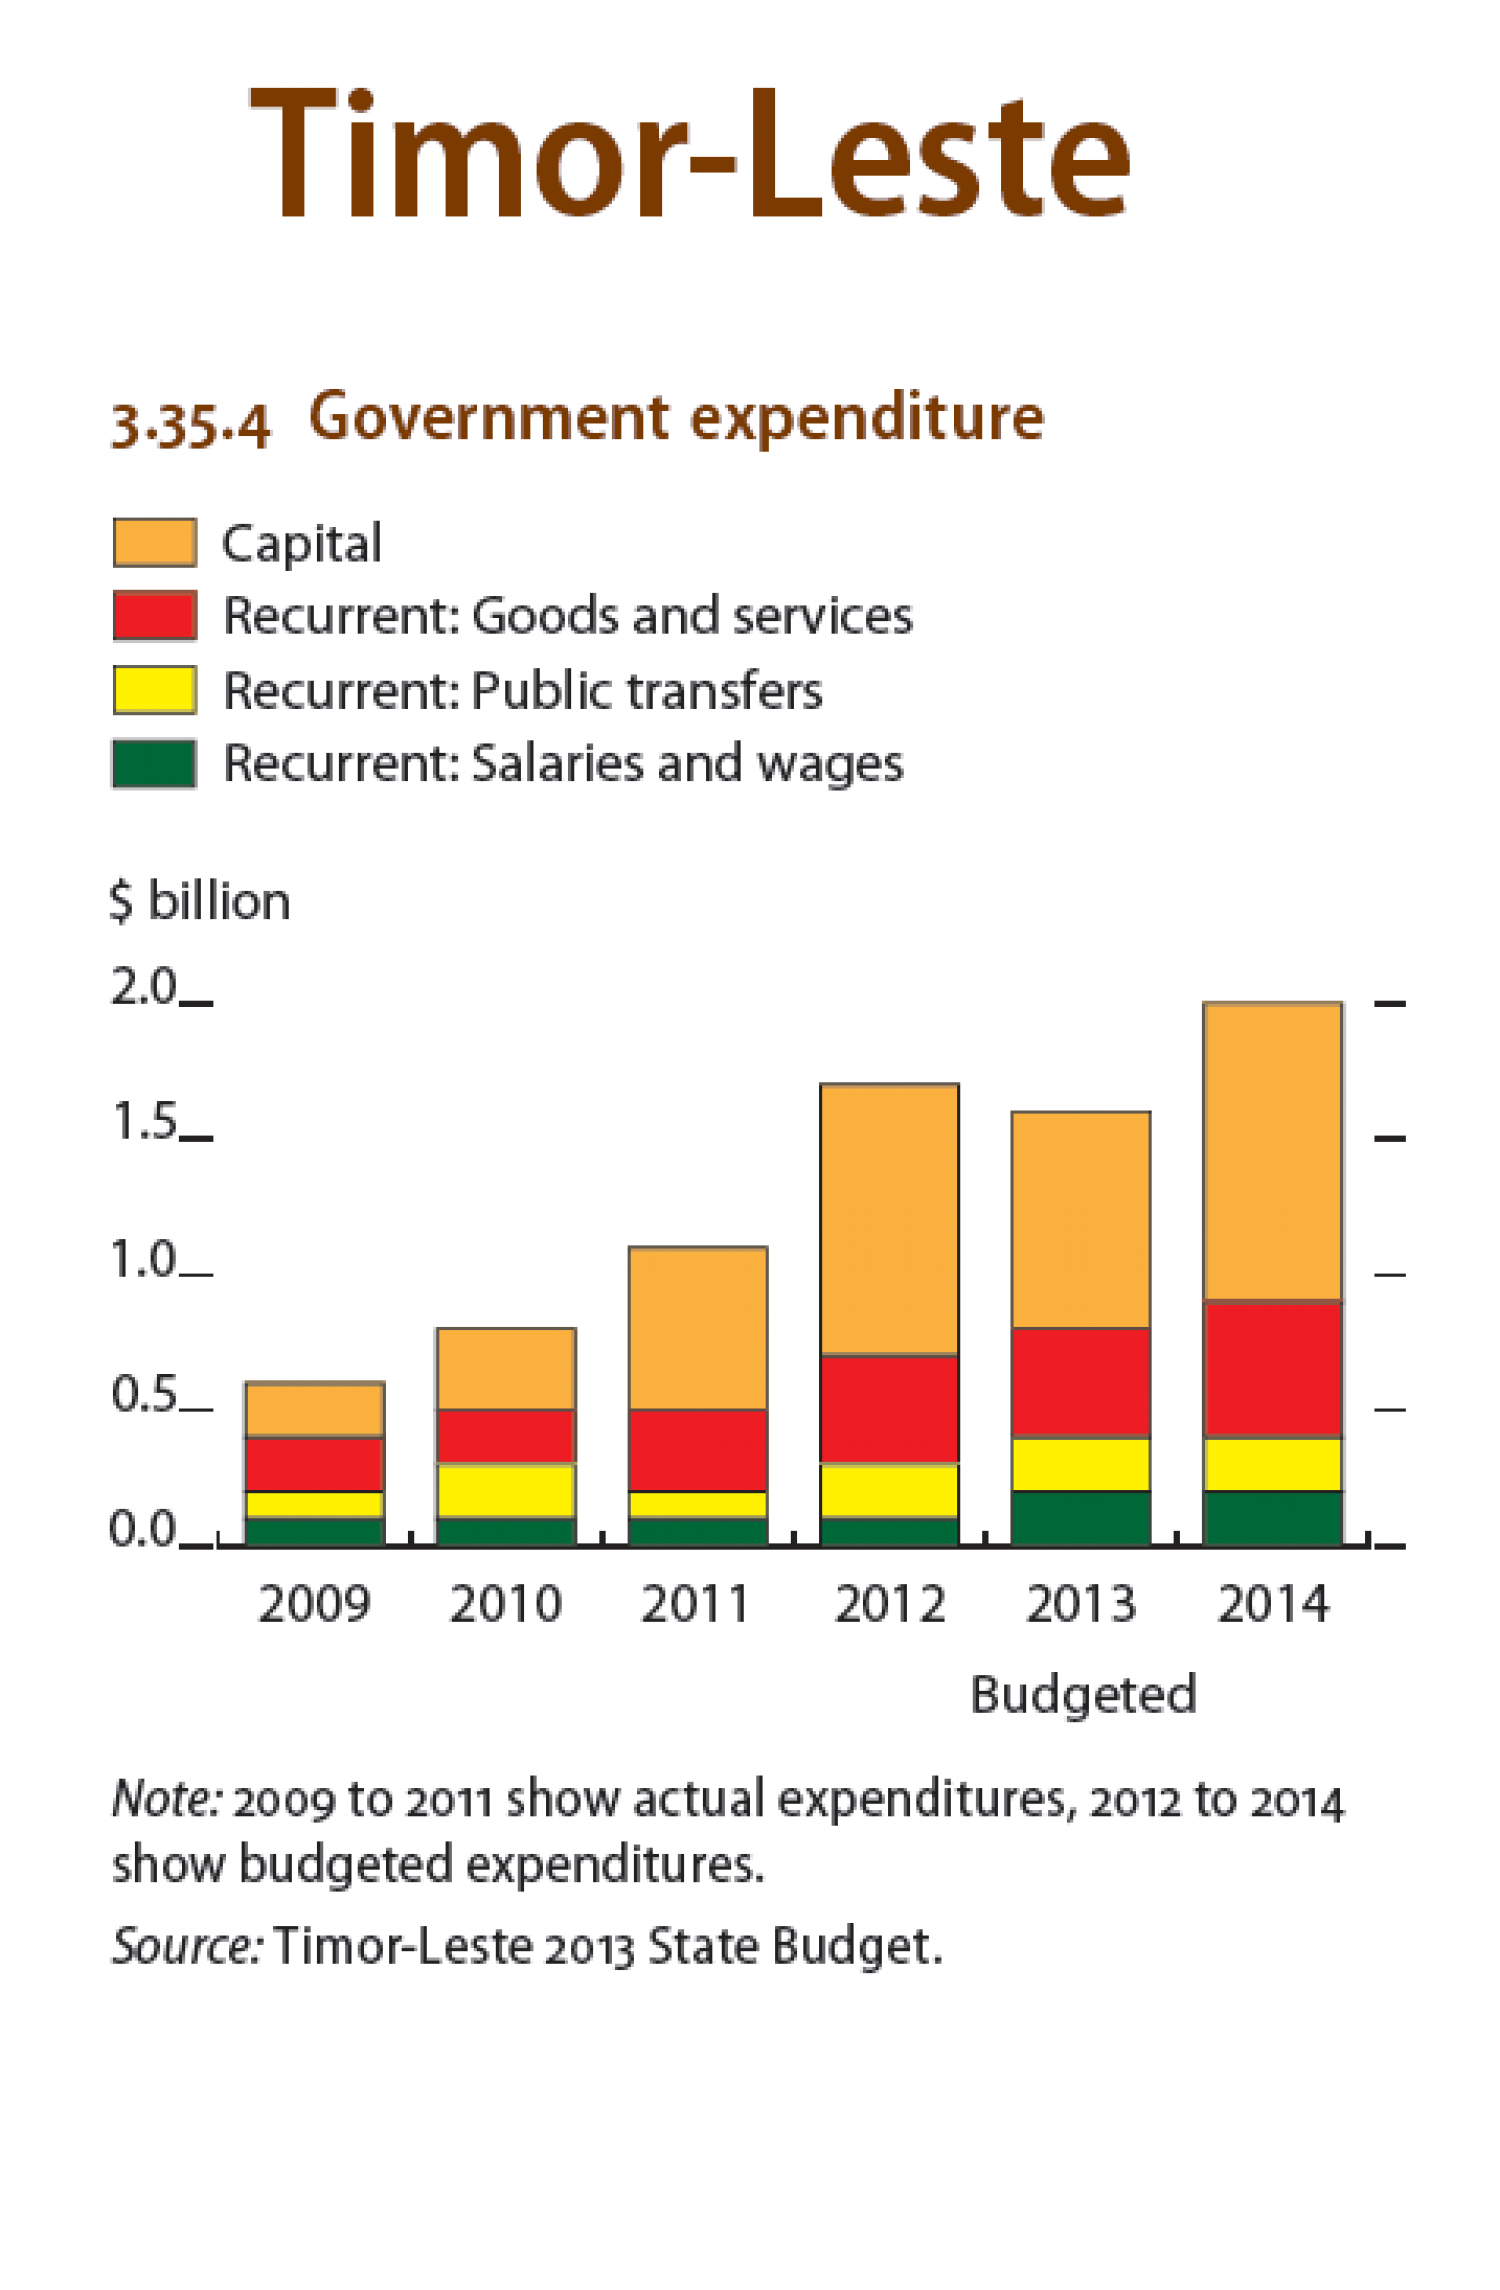 Timor-Leste : Government expenditure Infographic